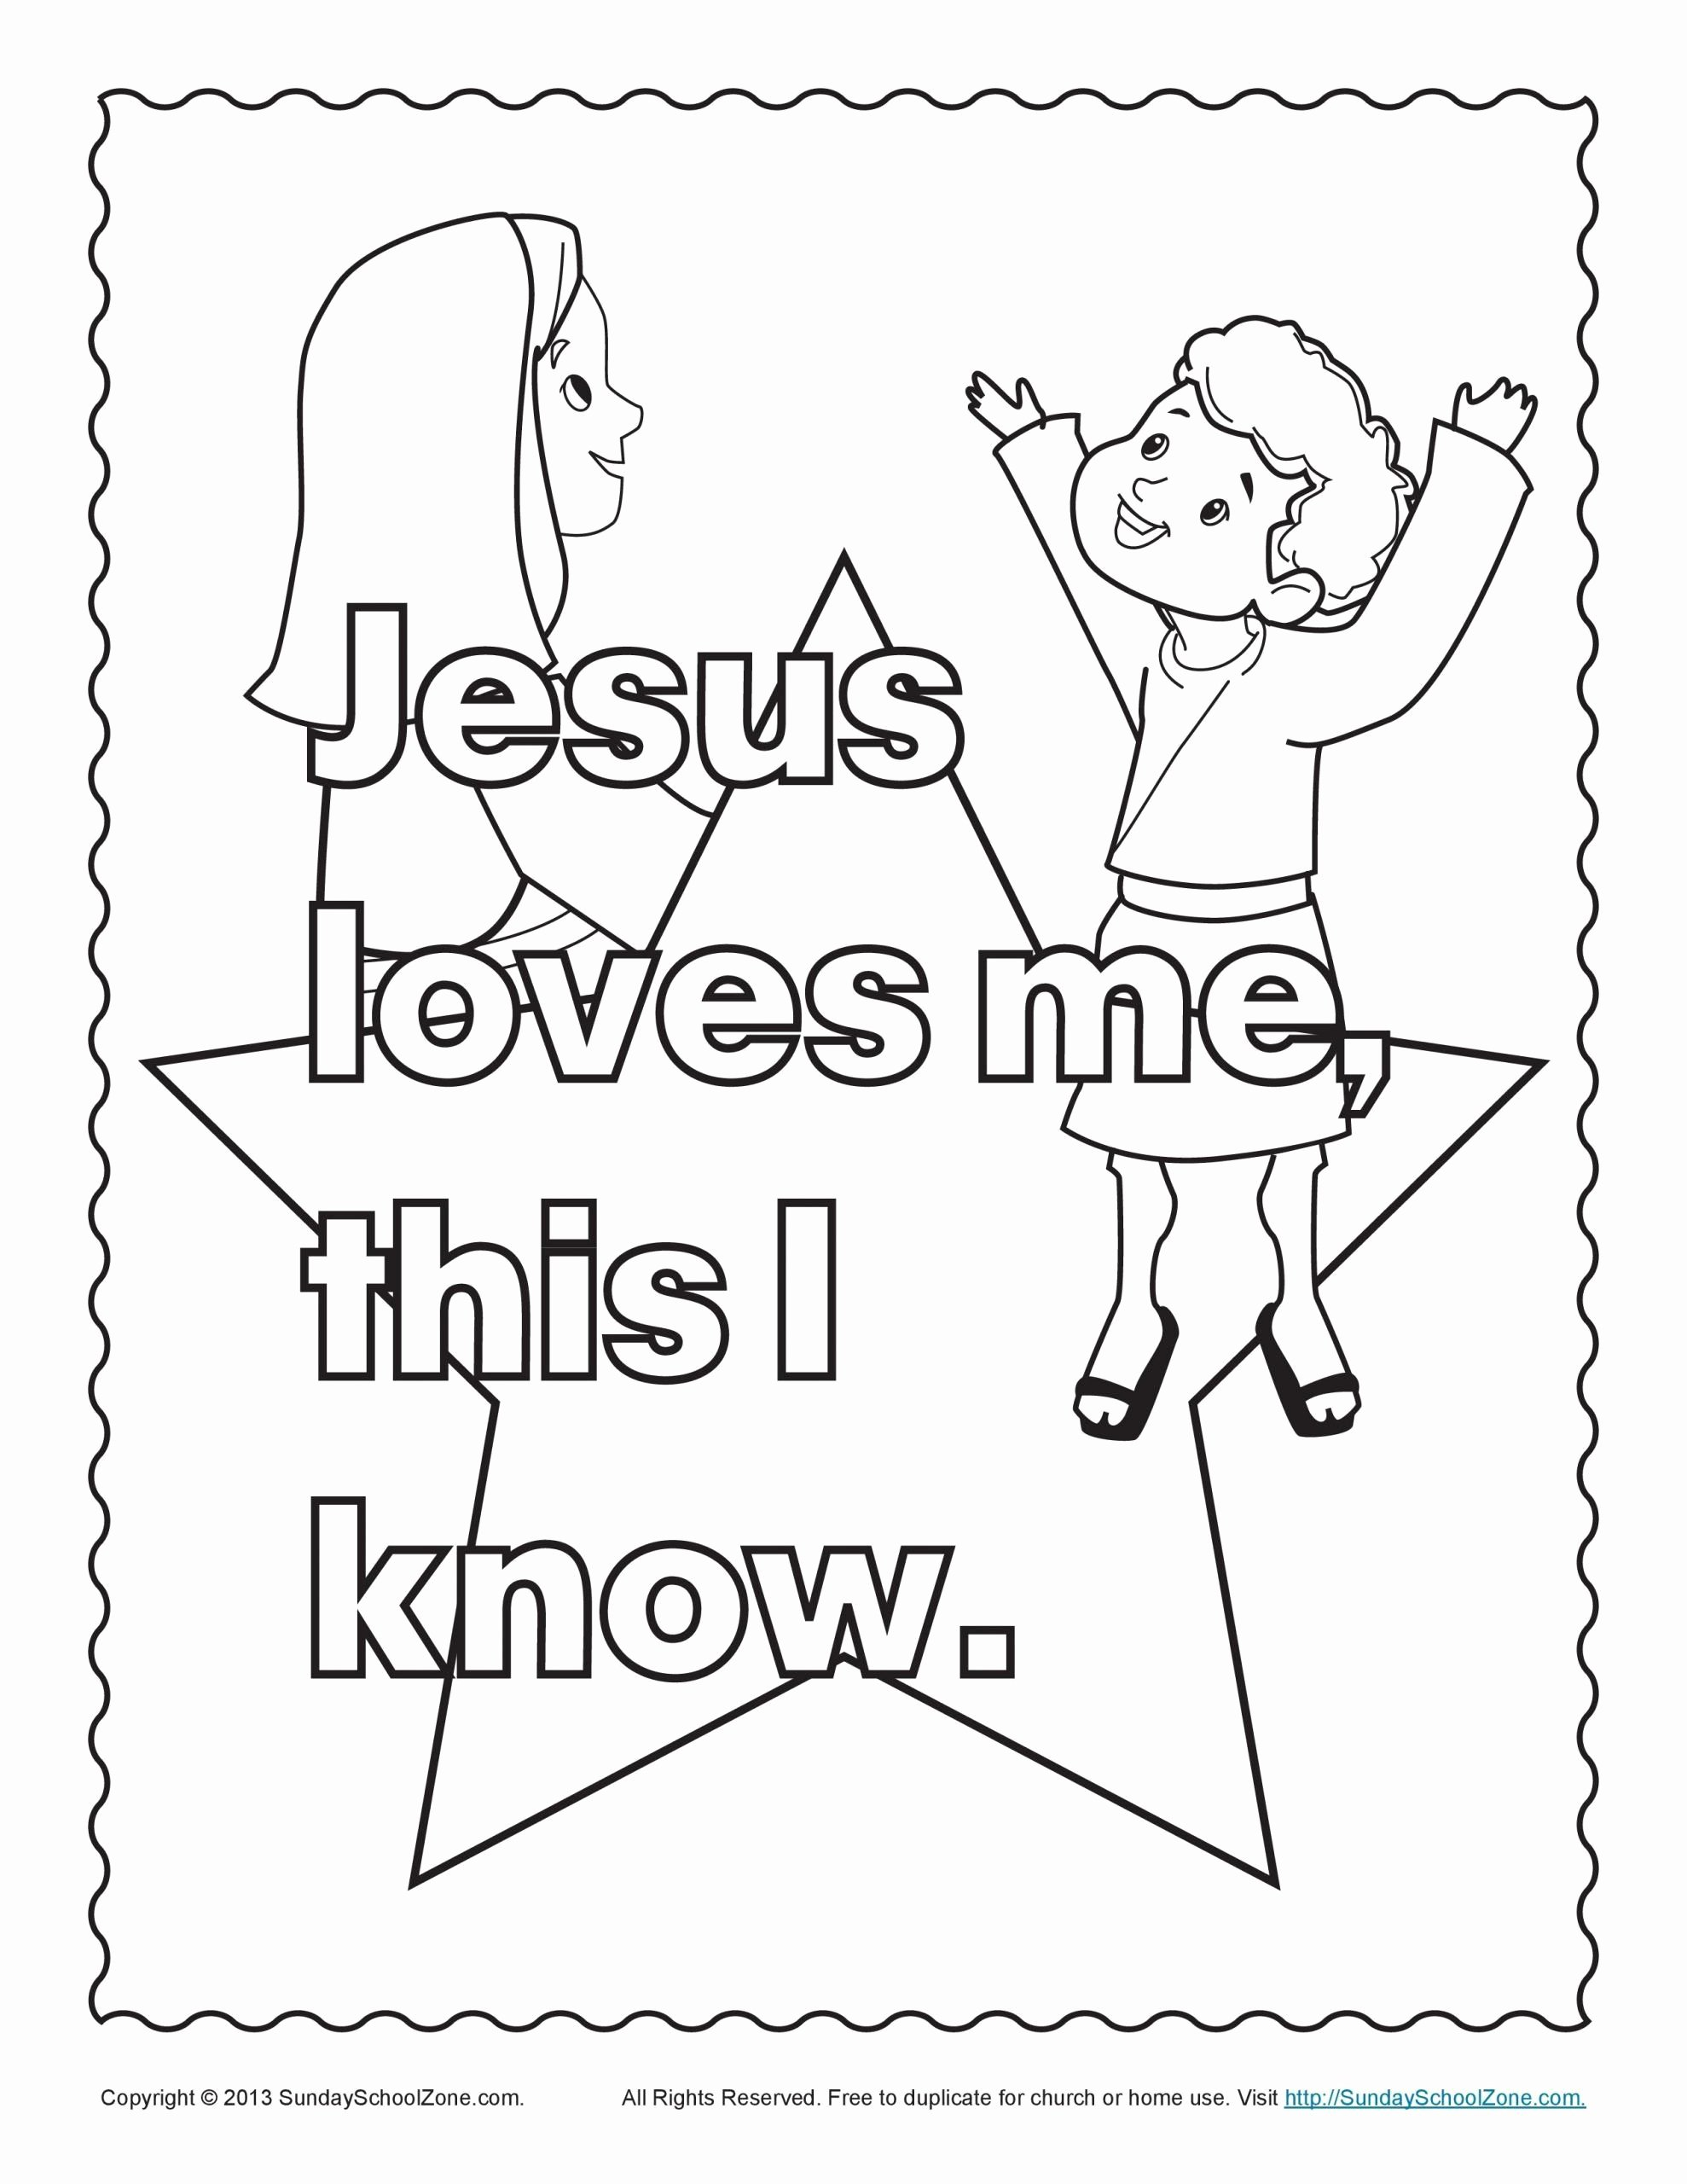 Bible Worksheets for Preschoolers top Worksheets Free Printable Bible Coloring for Preschoolers